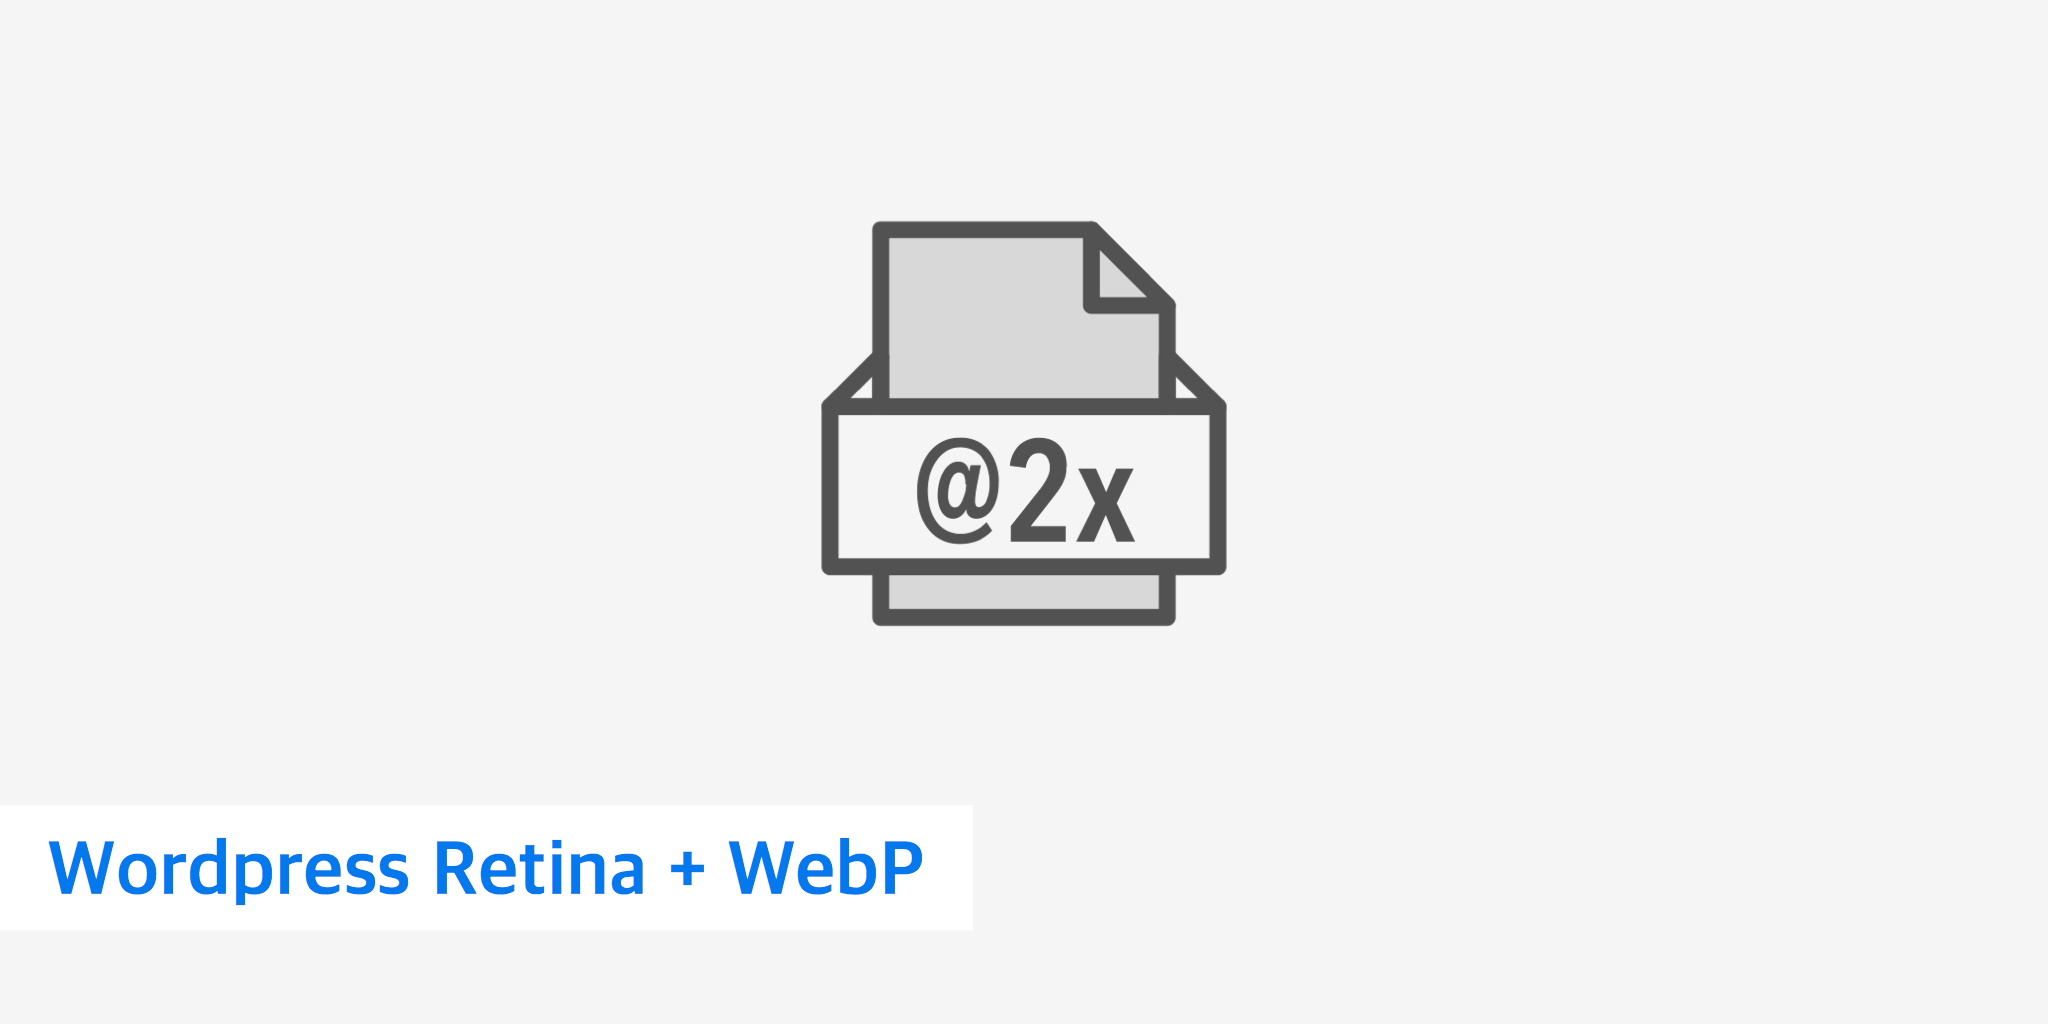 How to Use WordPress Retina and WebP Images